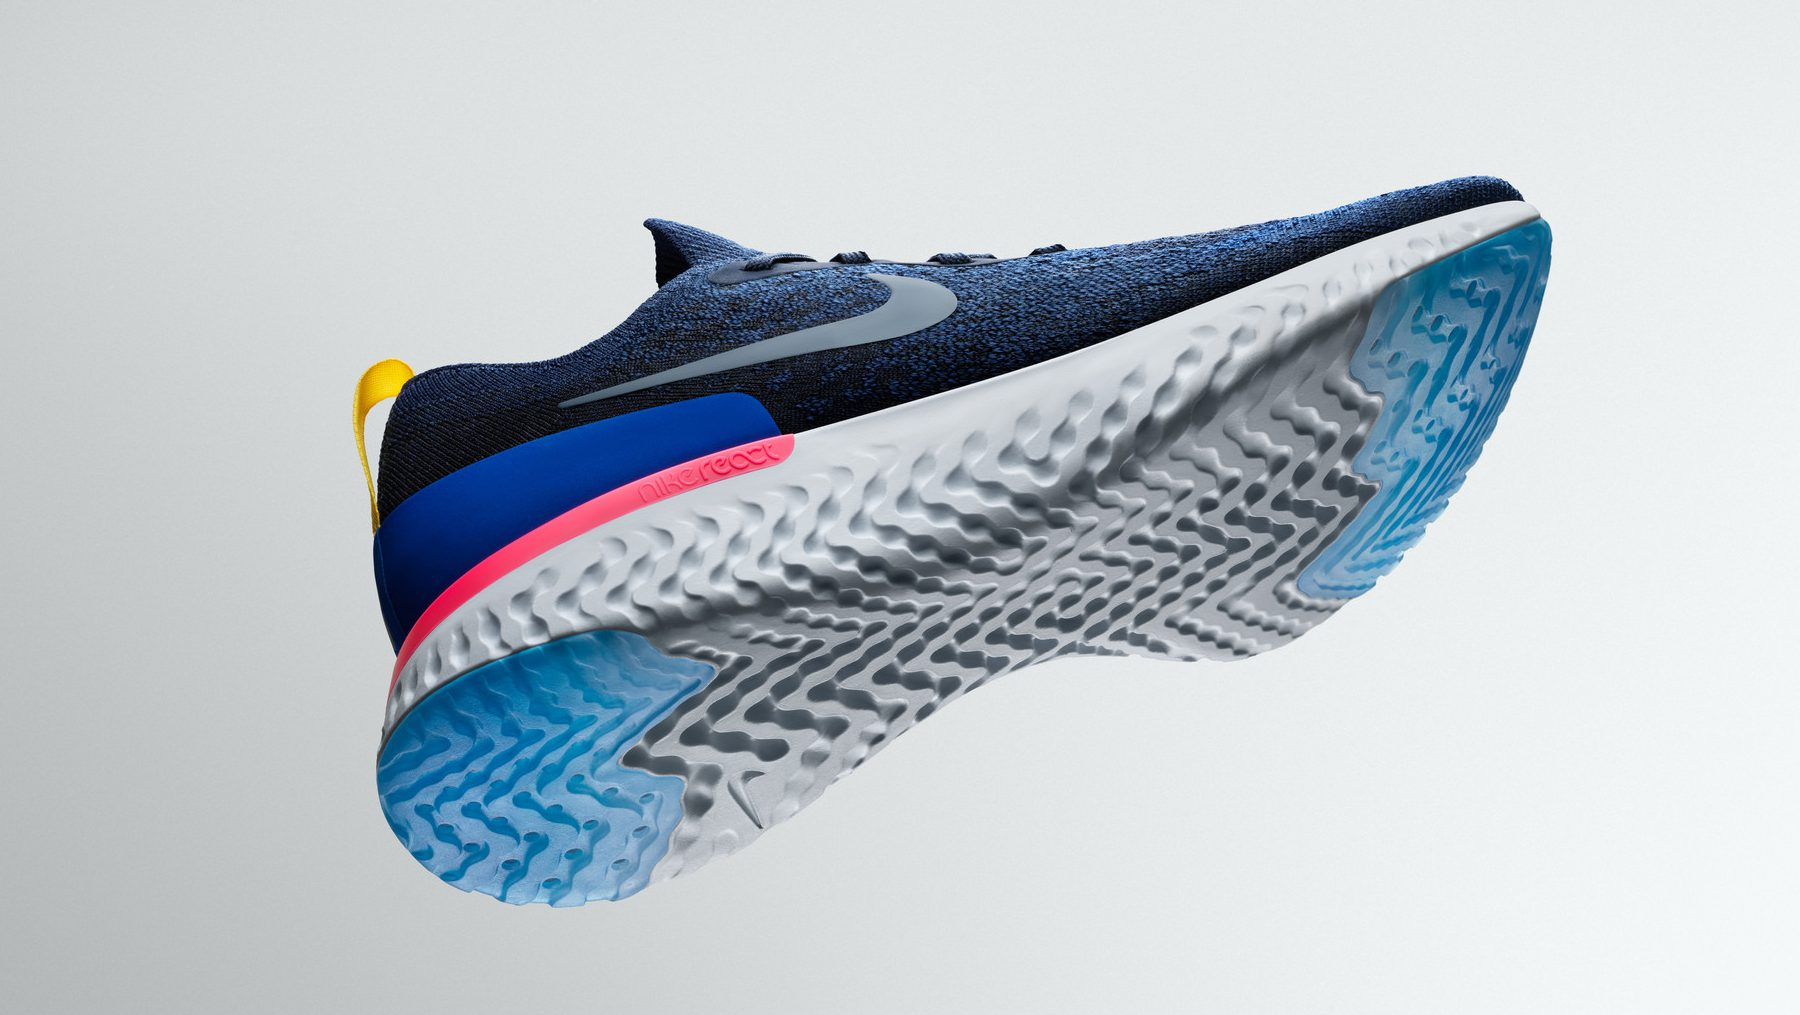 f20f0b97138dc Nike Epic React Flyknit  Nike s next big thing in comfortable ...